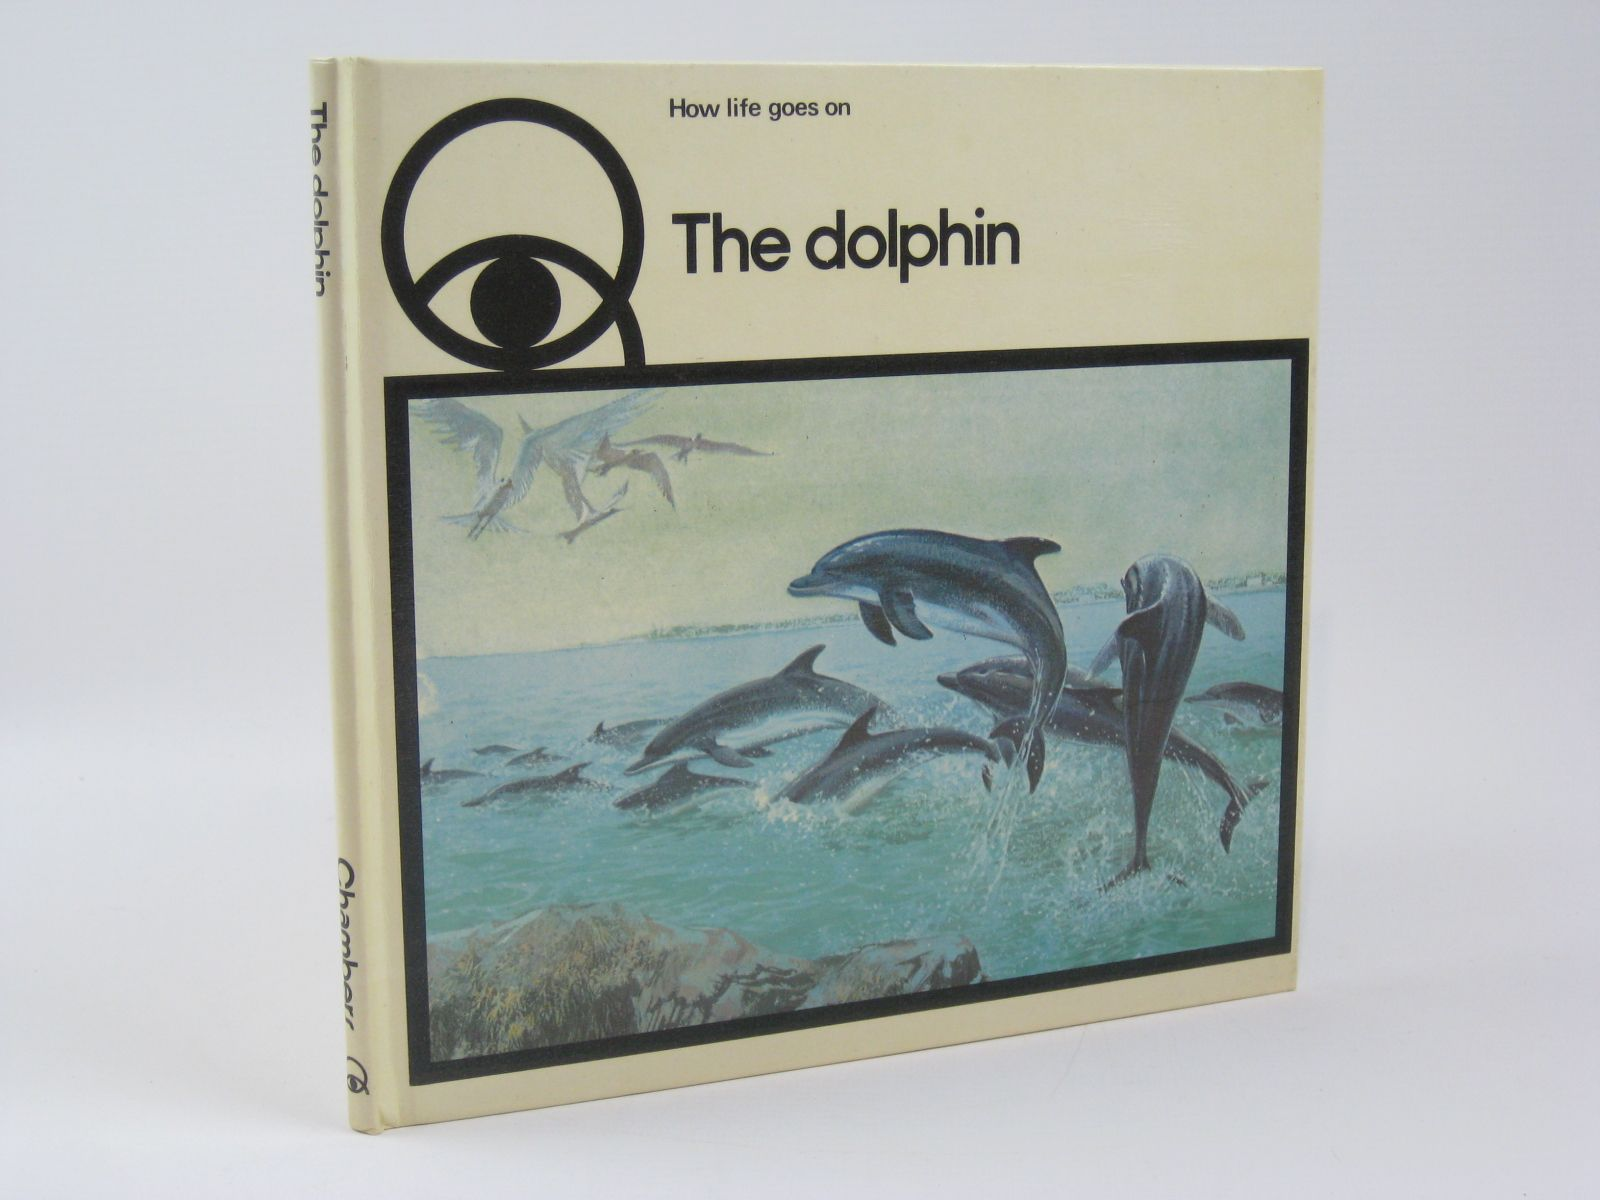 Photo of HOW LIFE GOES ON THE DOLPHIN written by Roels, Iliane Nicolas, Claude illustrated by Baynes, Pauline published by W. & R. Chambers Limited (STOCK CODE: 1506711)  for sale by Stella & Rose's Books